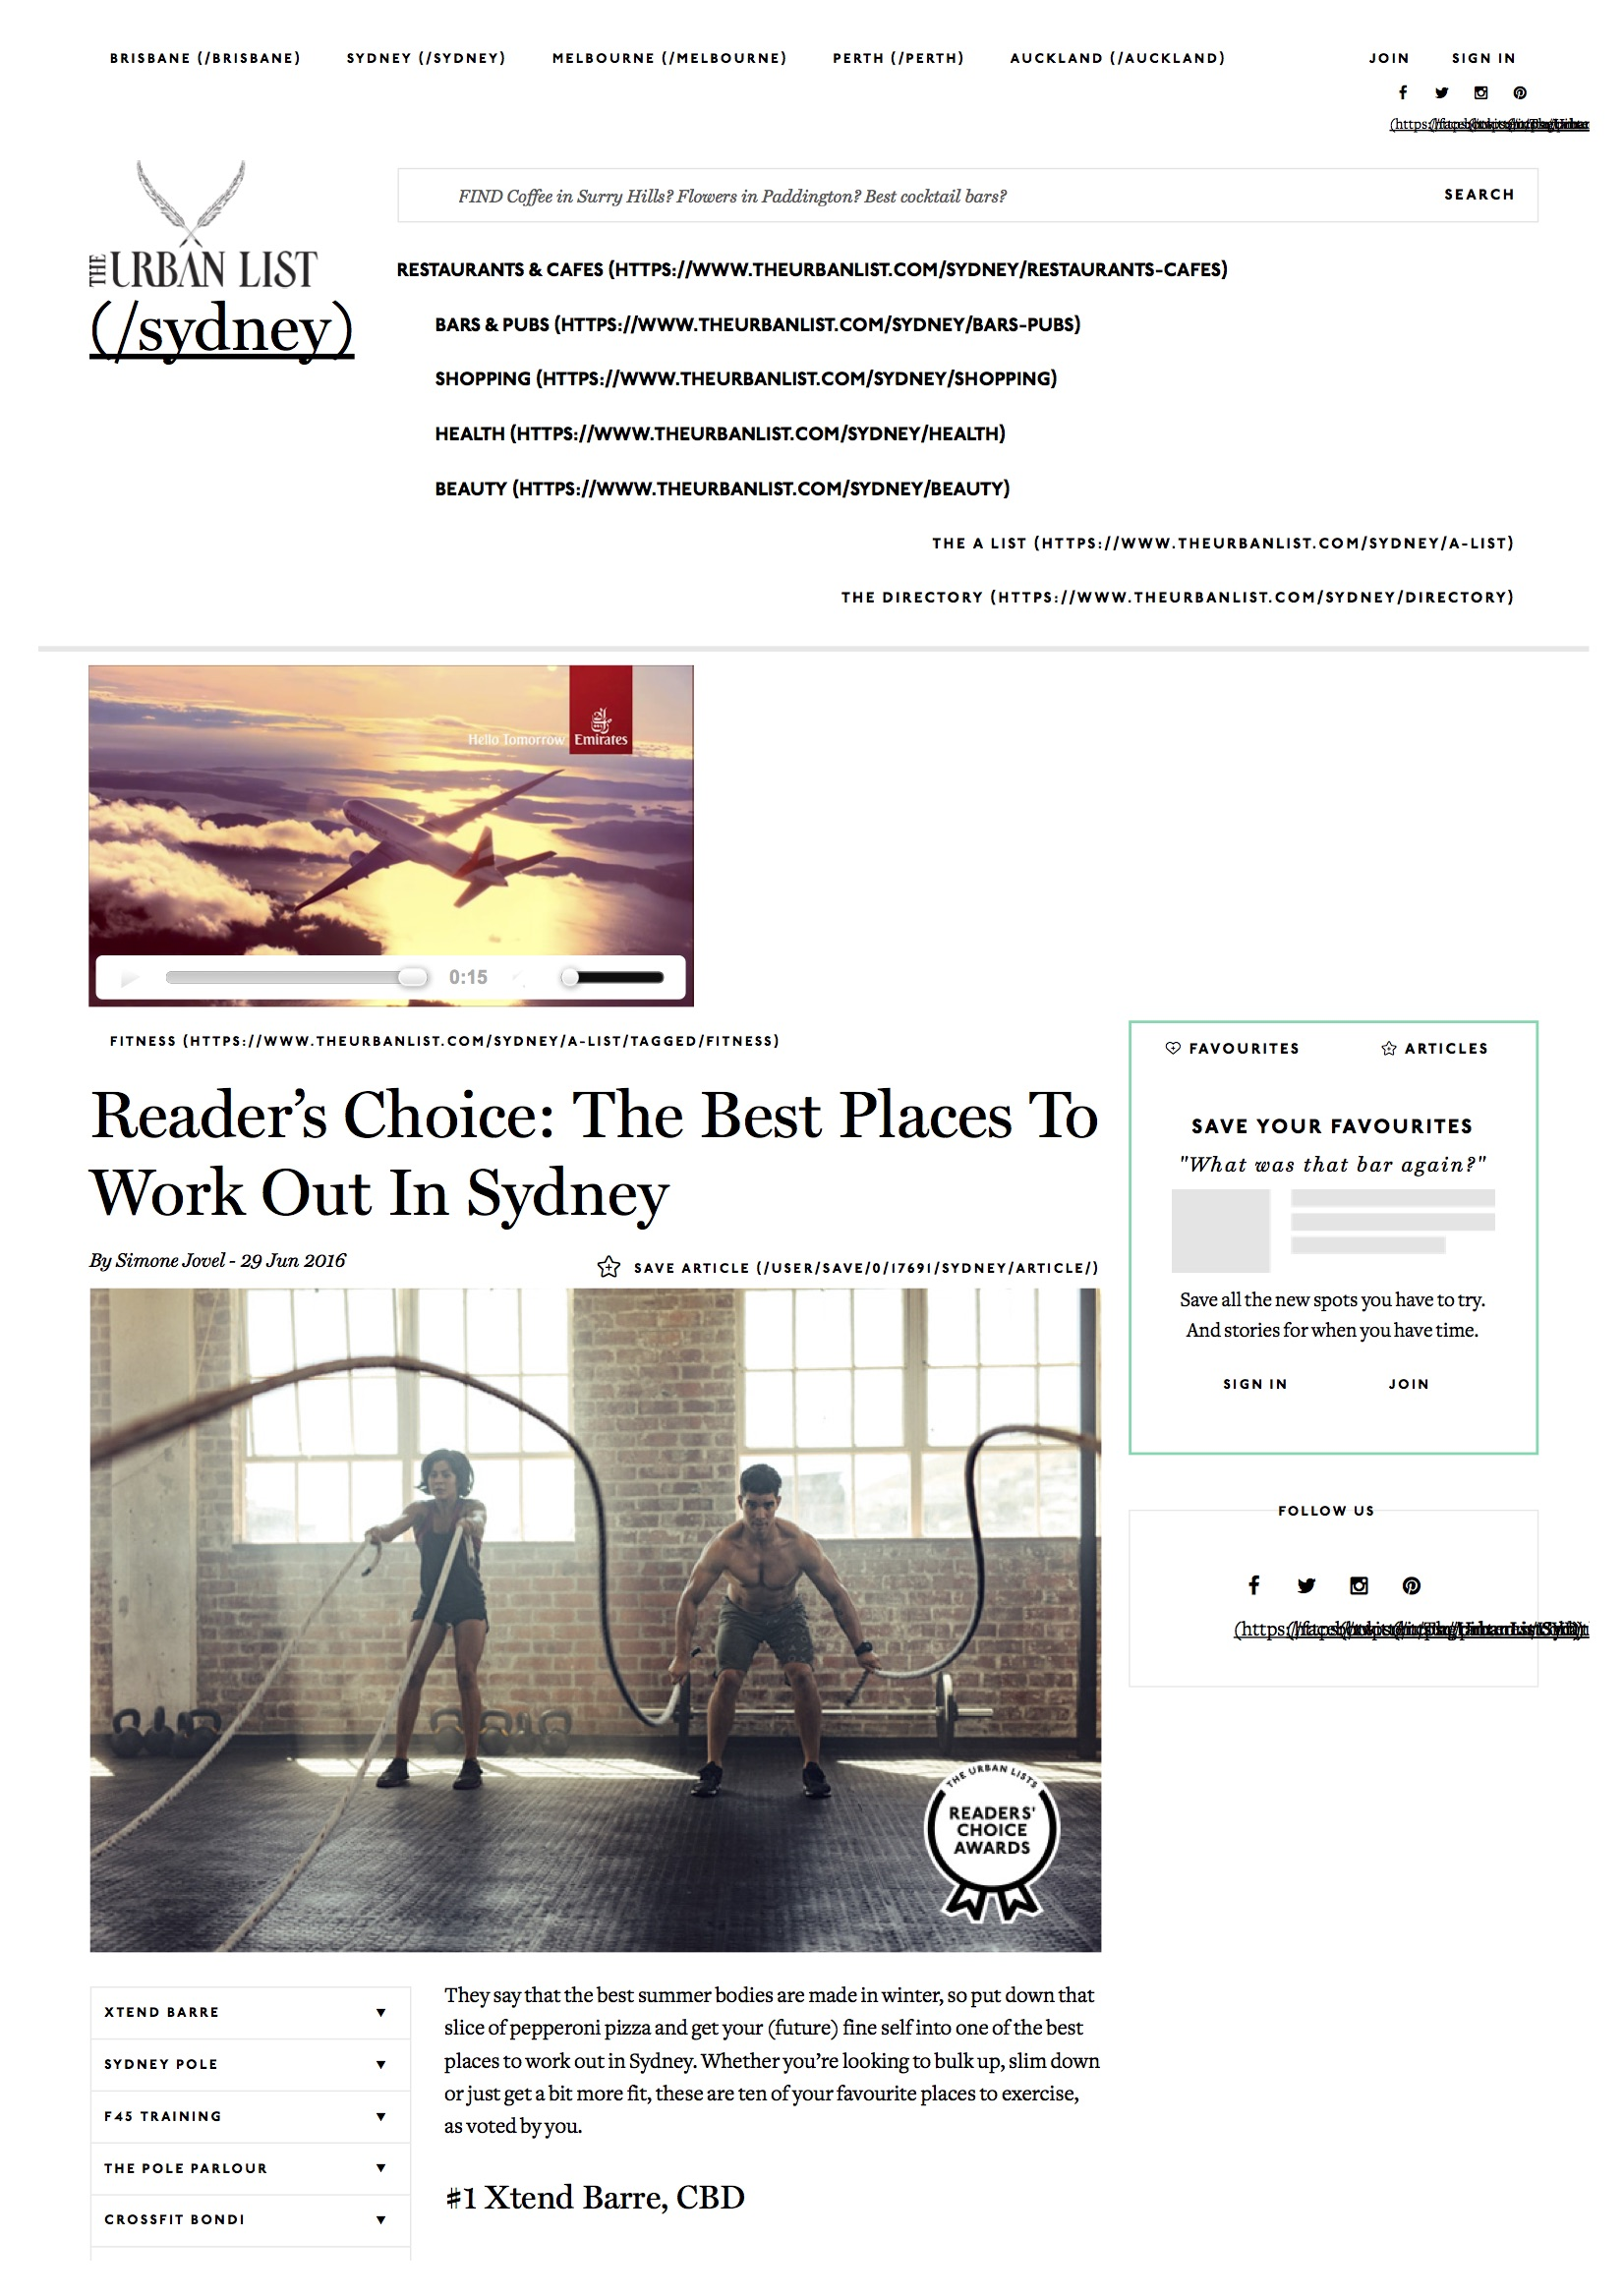 At Ruben's Voted Top 10 in Sydney Places to workout